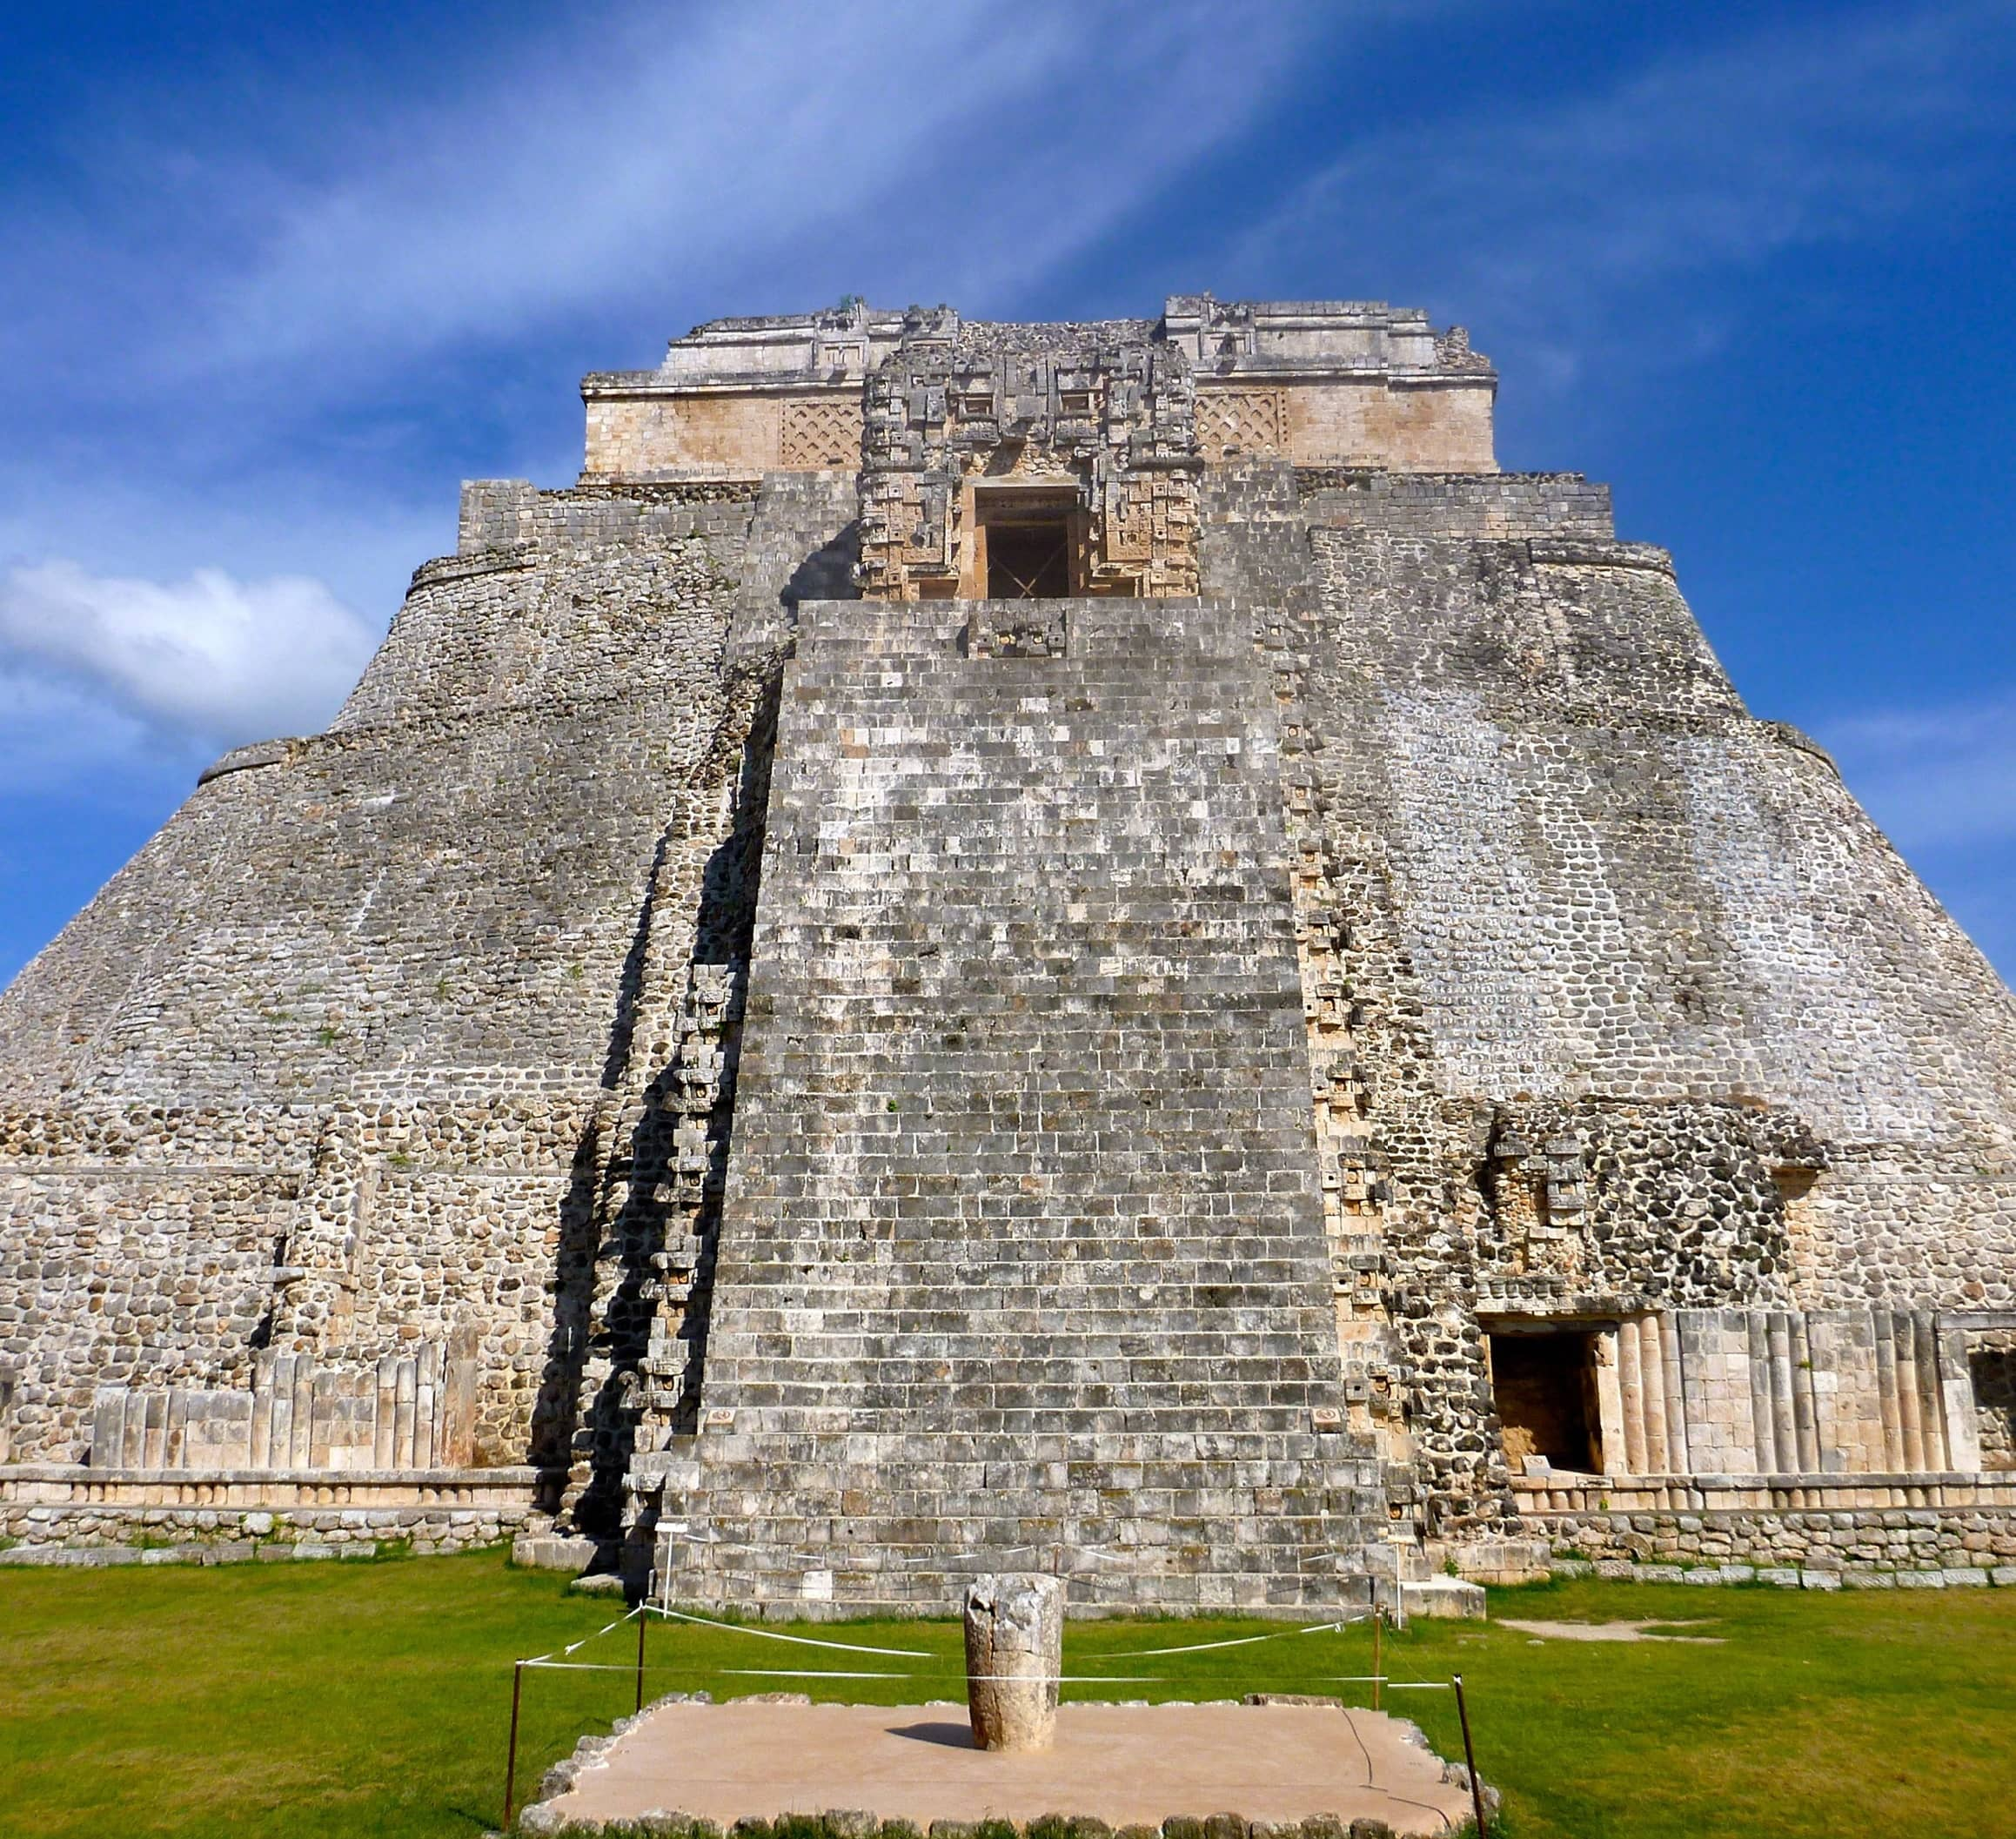 INFLUENCERS BEHAVING ADLY: MEXICO KICKS THEM OUT OF RUINS